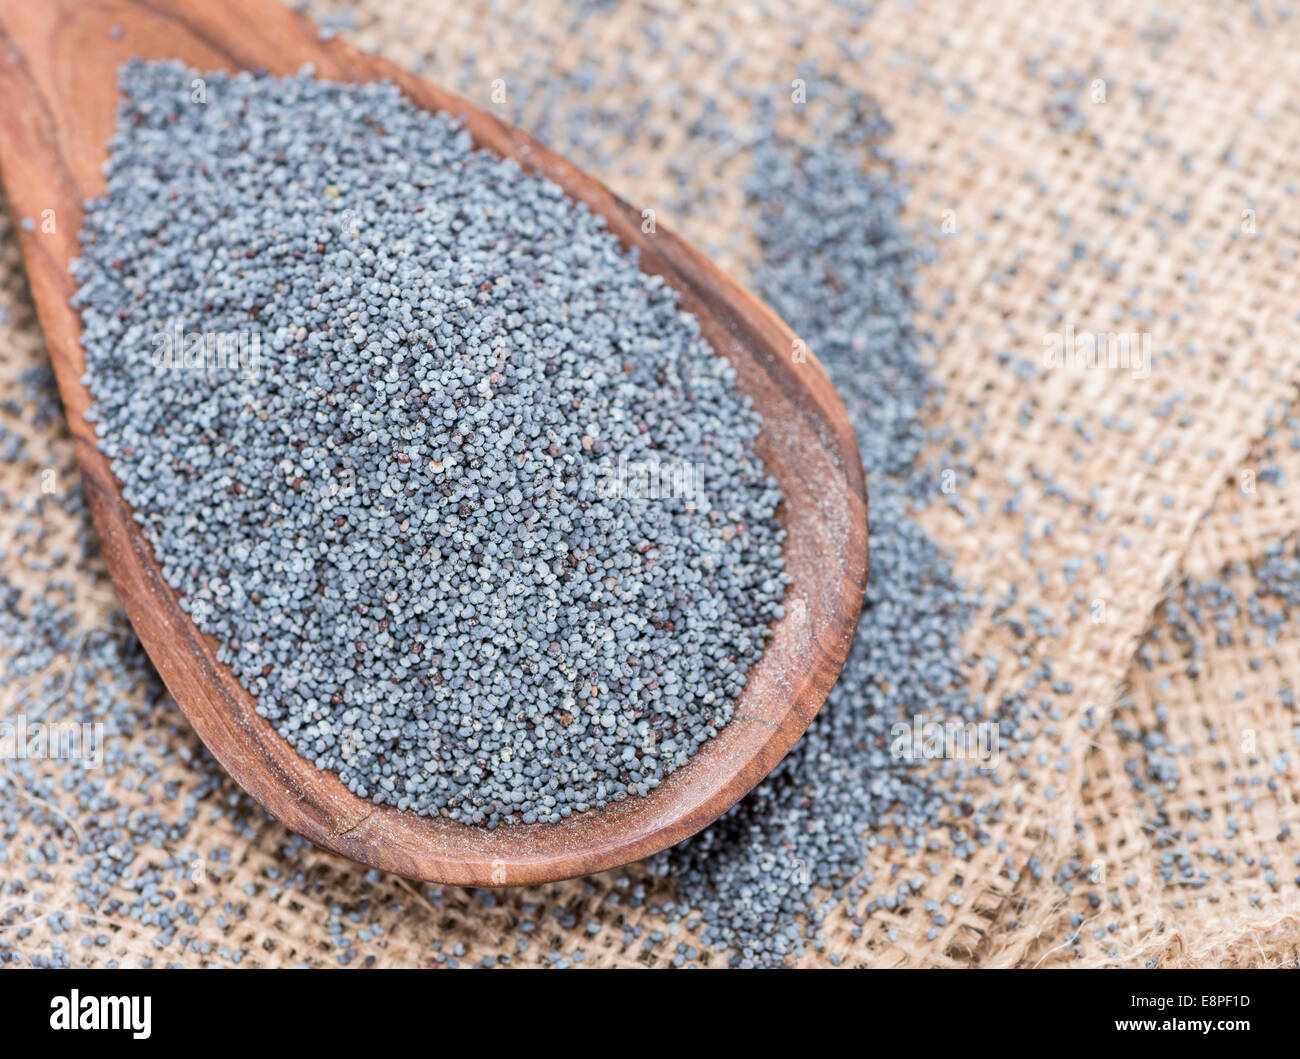 Small portion of Poppyseed (detailes close-up shot) - Stock Image